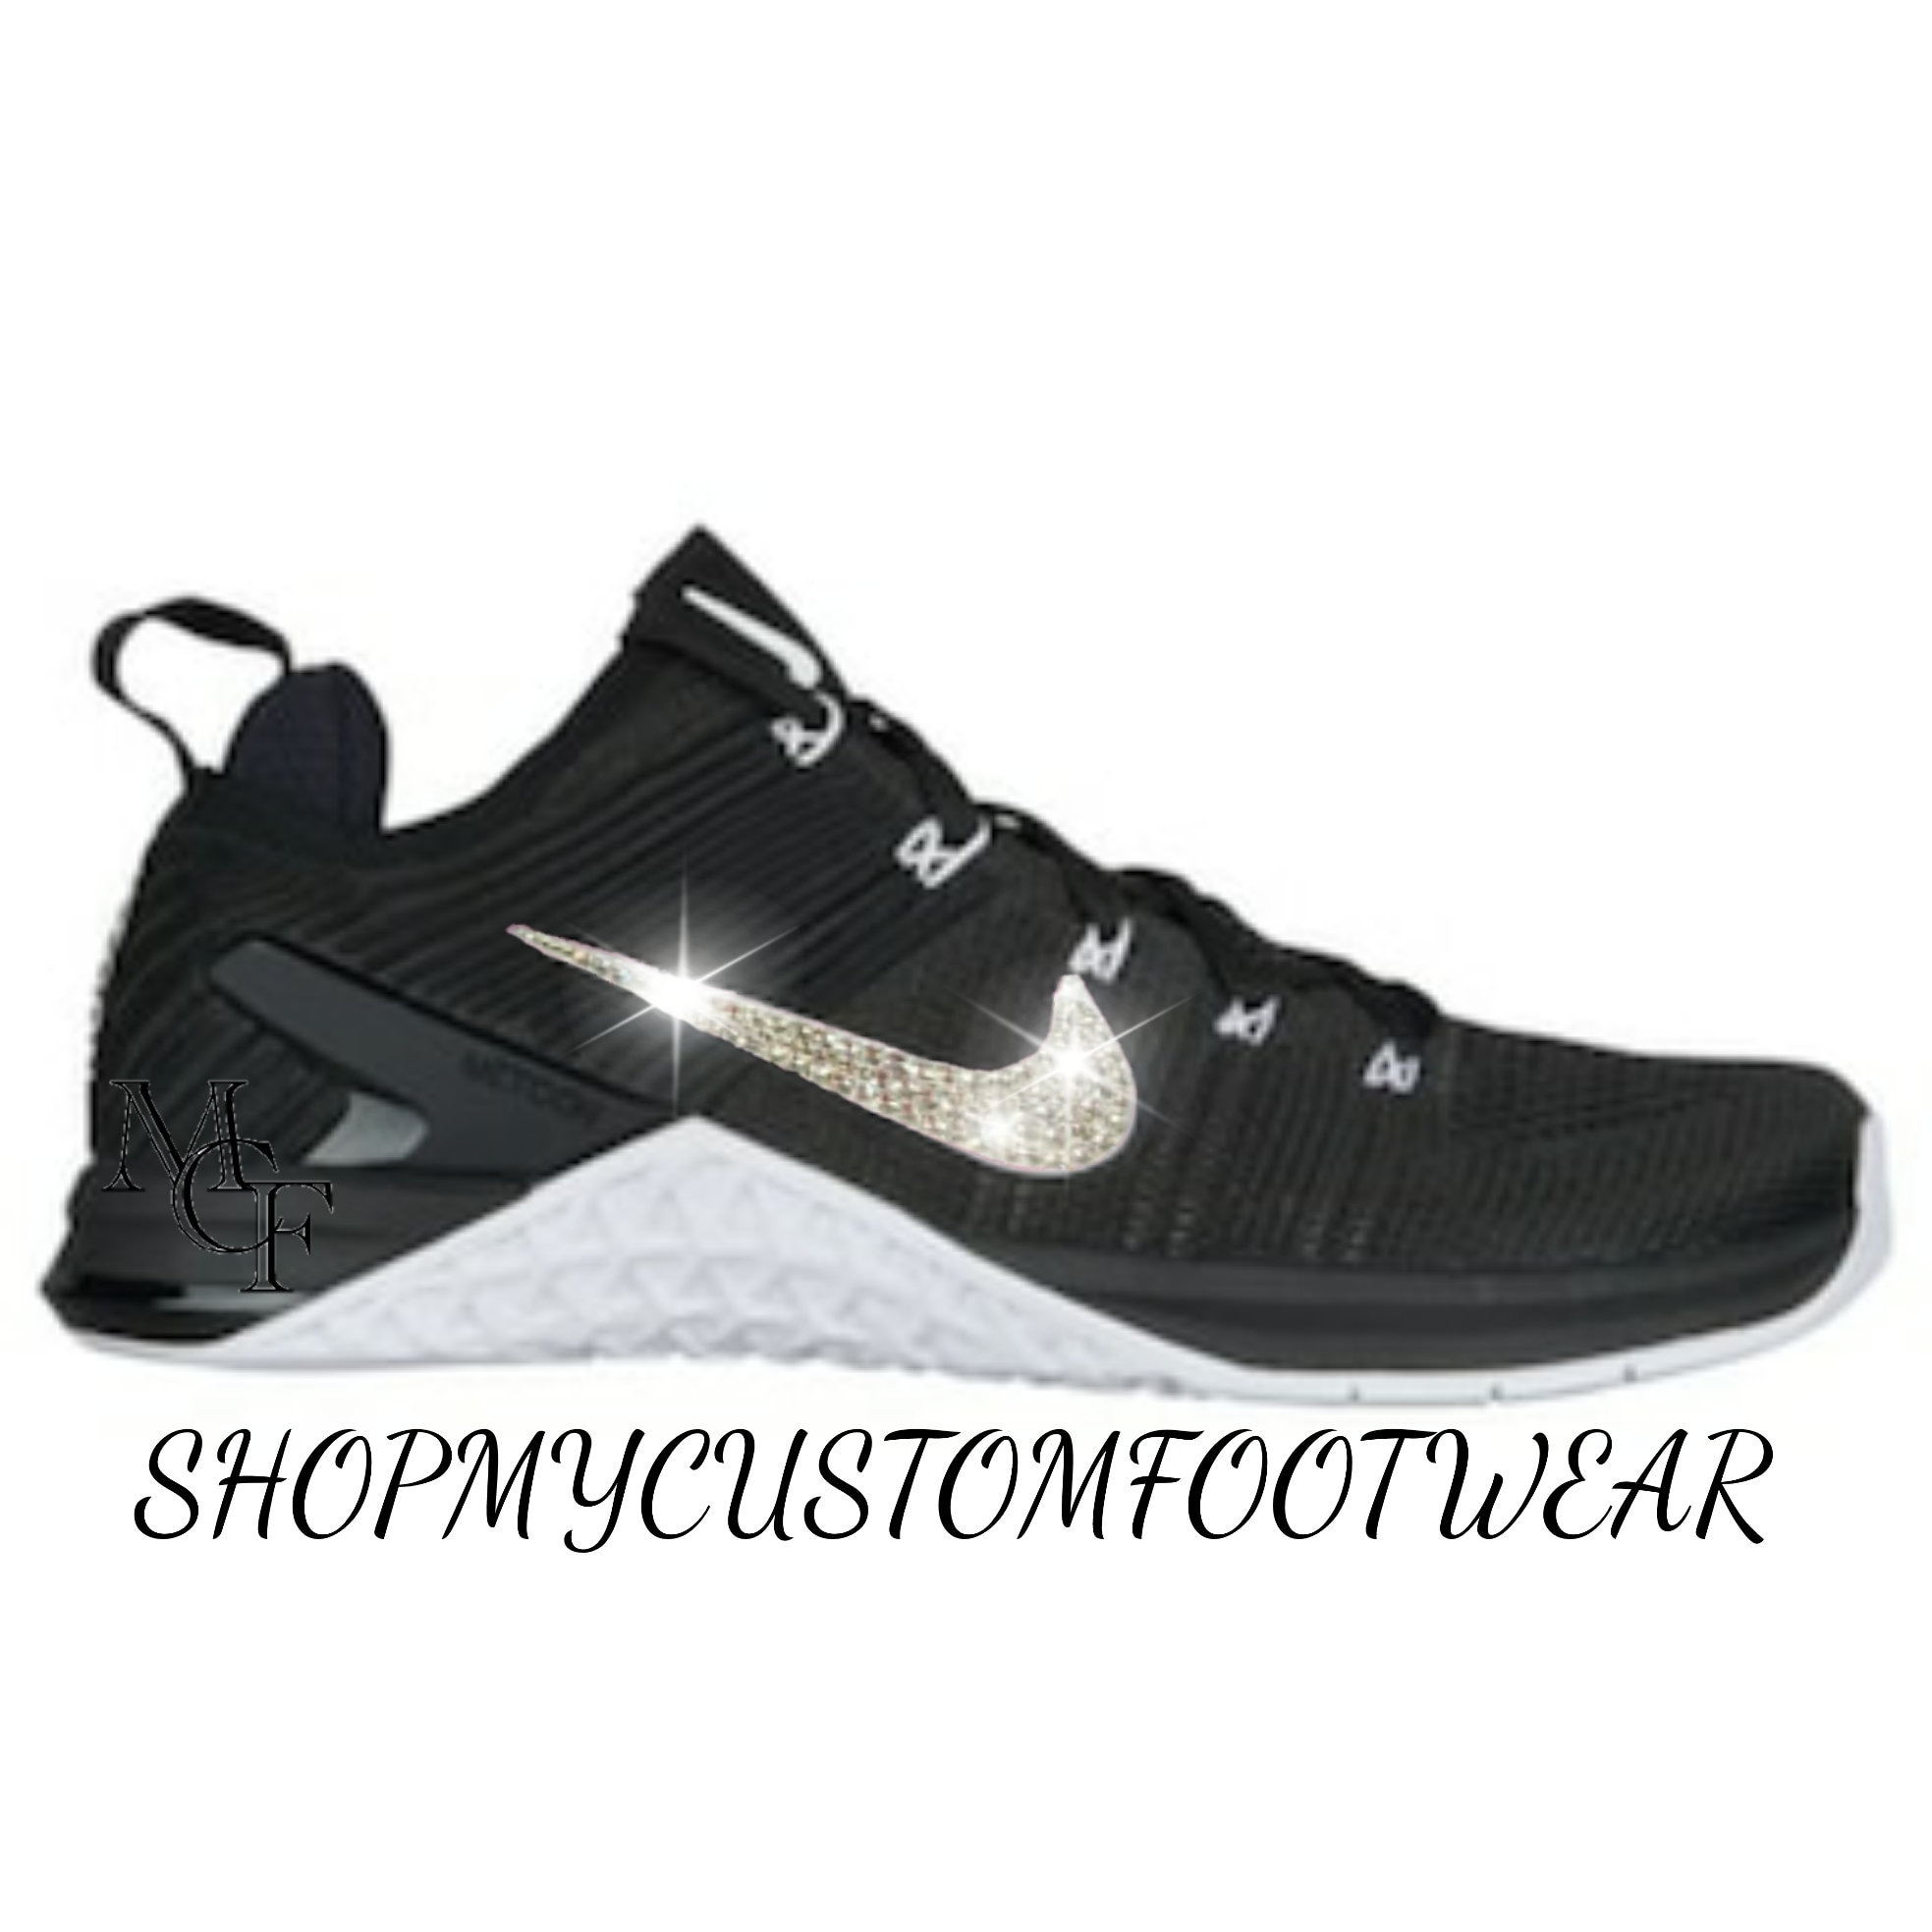 ... huge discount 7ac16 11e64 Nike Metcon DSX Flyknit 2 customized with Swarovski  Crystal ... 3fcb2f9dd